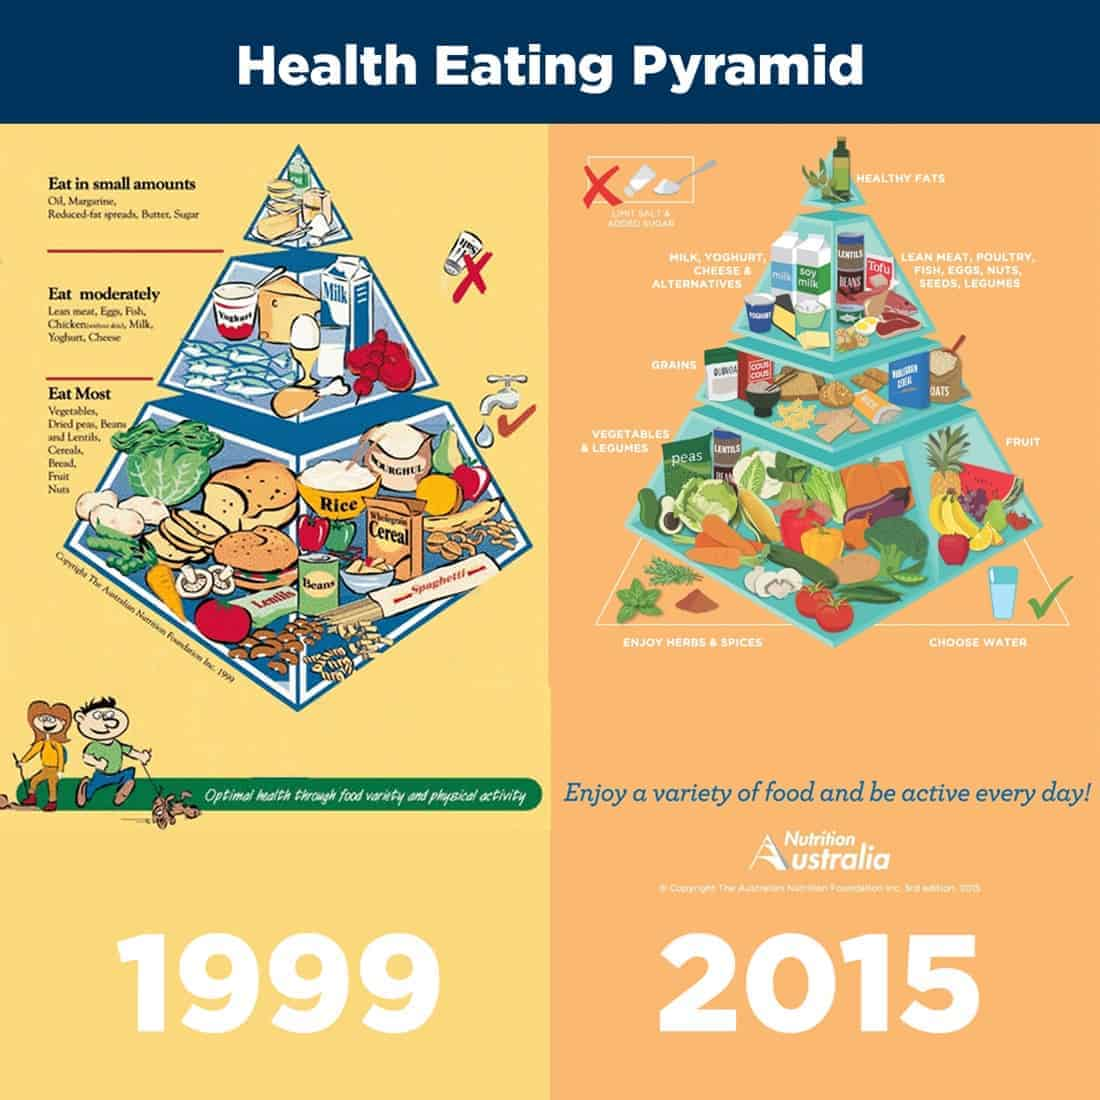 health-eating-pyramid_2015_to_1999